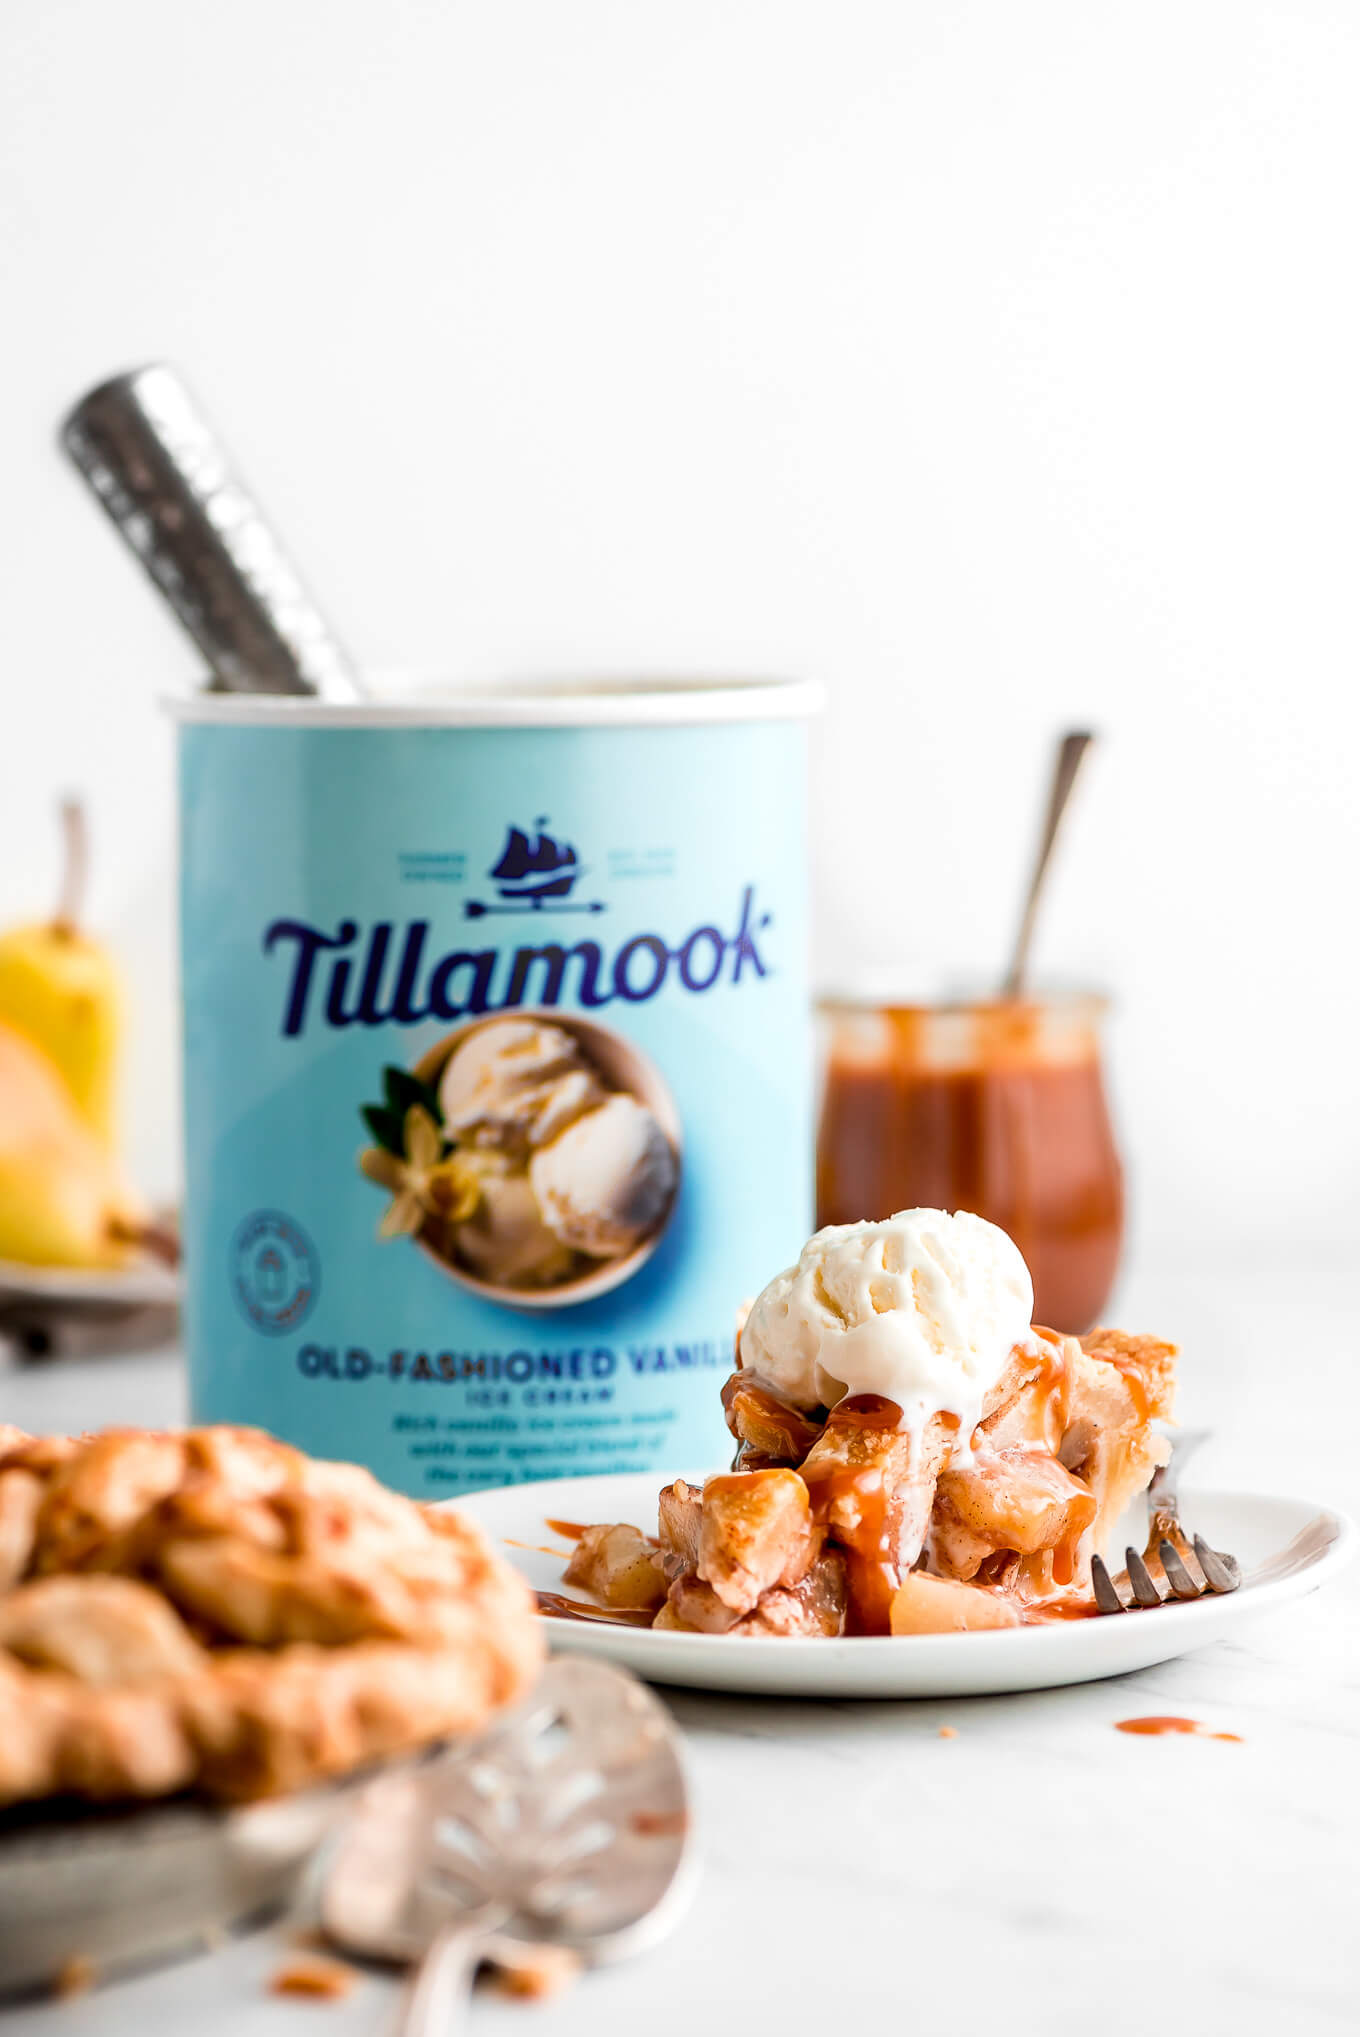 A slice of pie on a plate with ice cream on top and a carton of Tillamook Vanilla Ice Cream in the background.